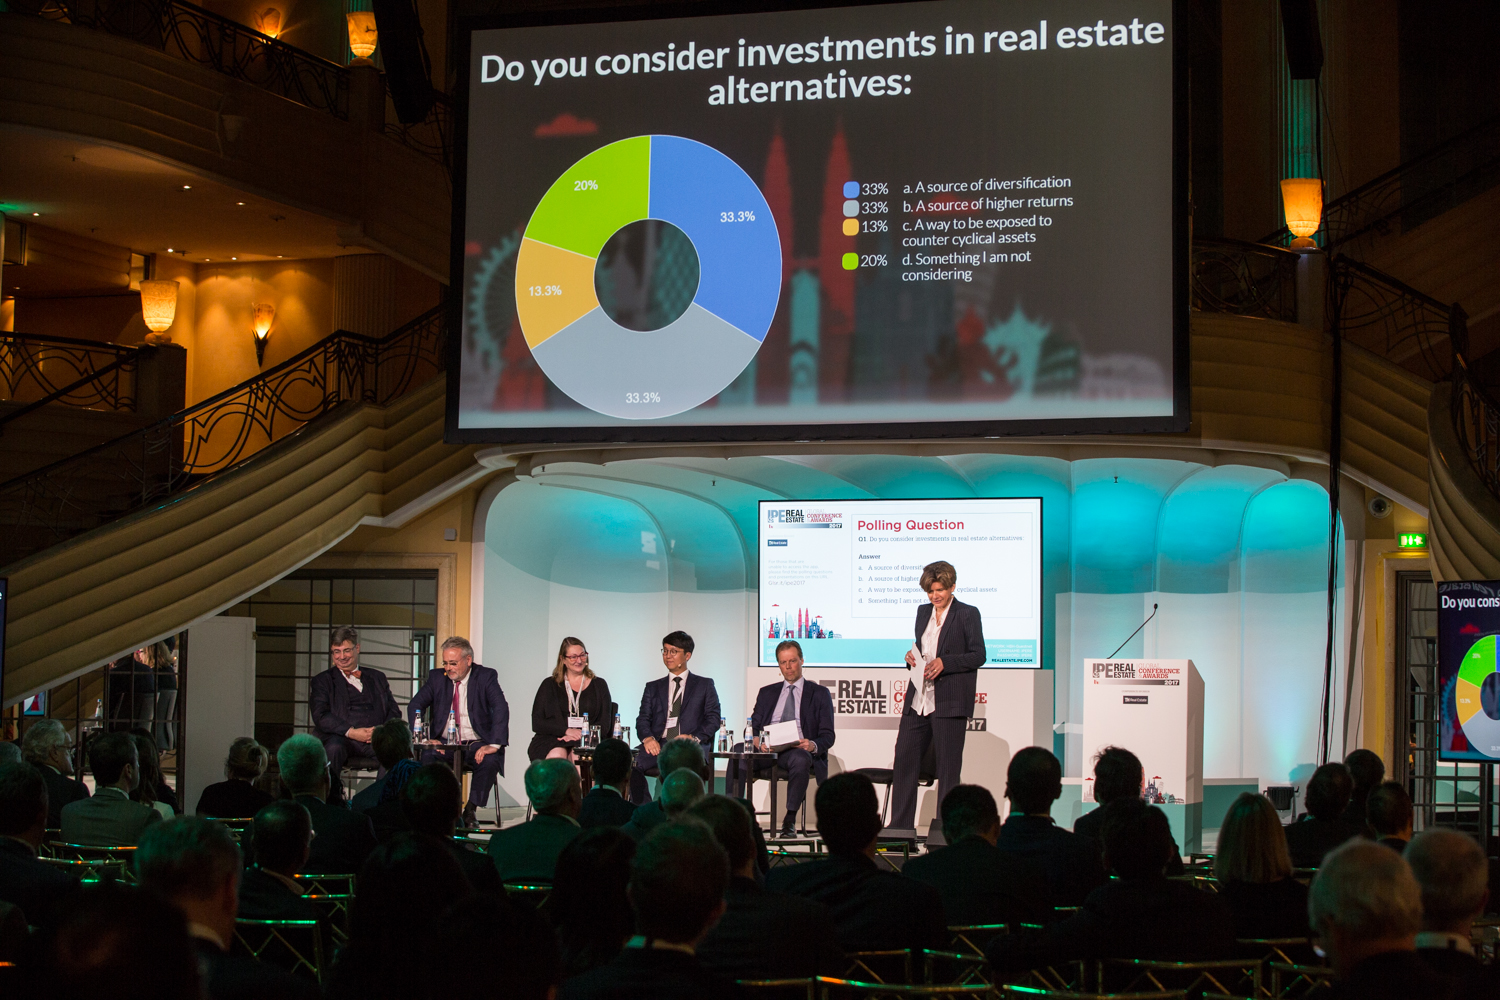 Real asset panel, IPE Real Estate Global Conference & Awards 2017